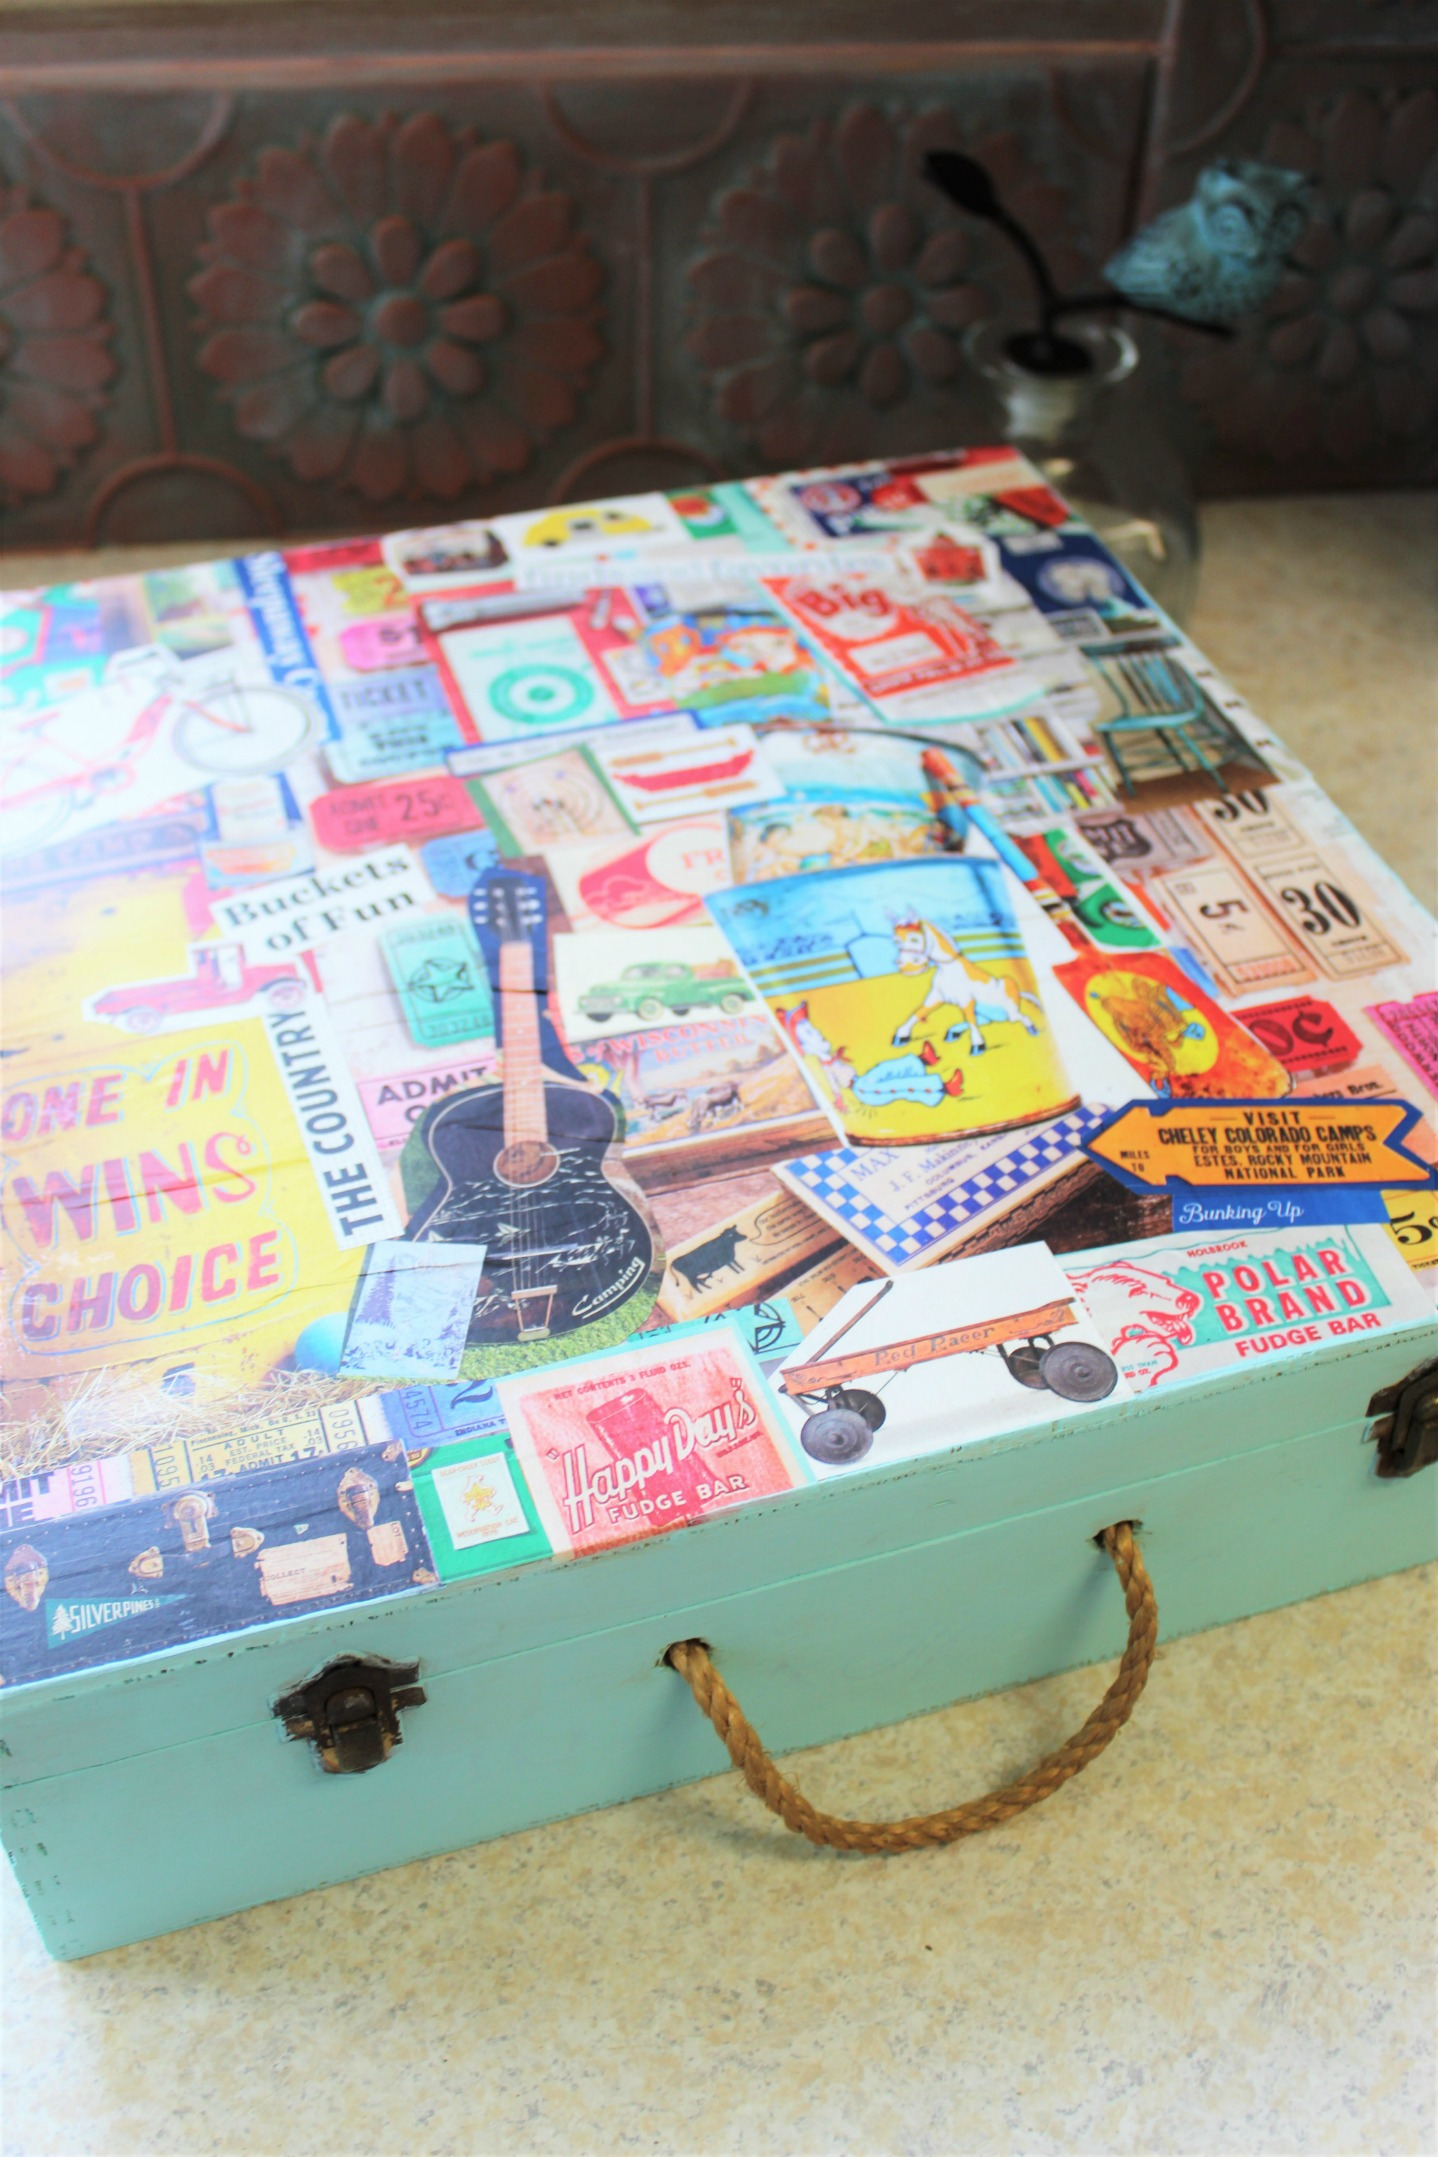 Decoupage Wood Box \\ This decoupage wood memory box combines your favorite inspirational art to create a one-of-a-kind keepsake to store vacation memories or momentos.